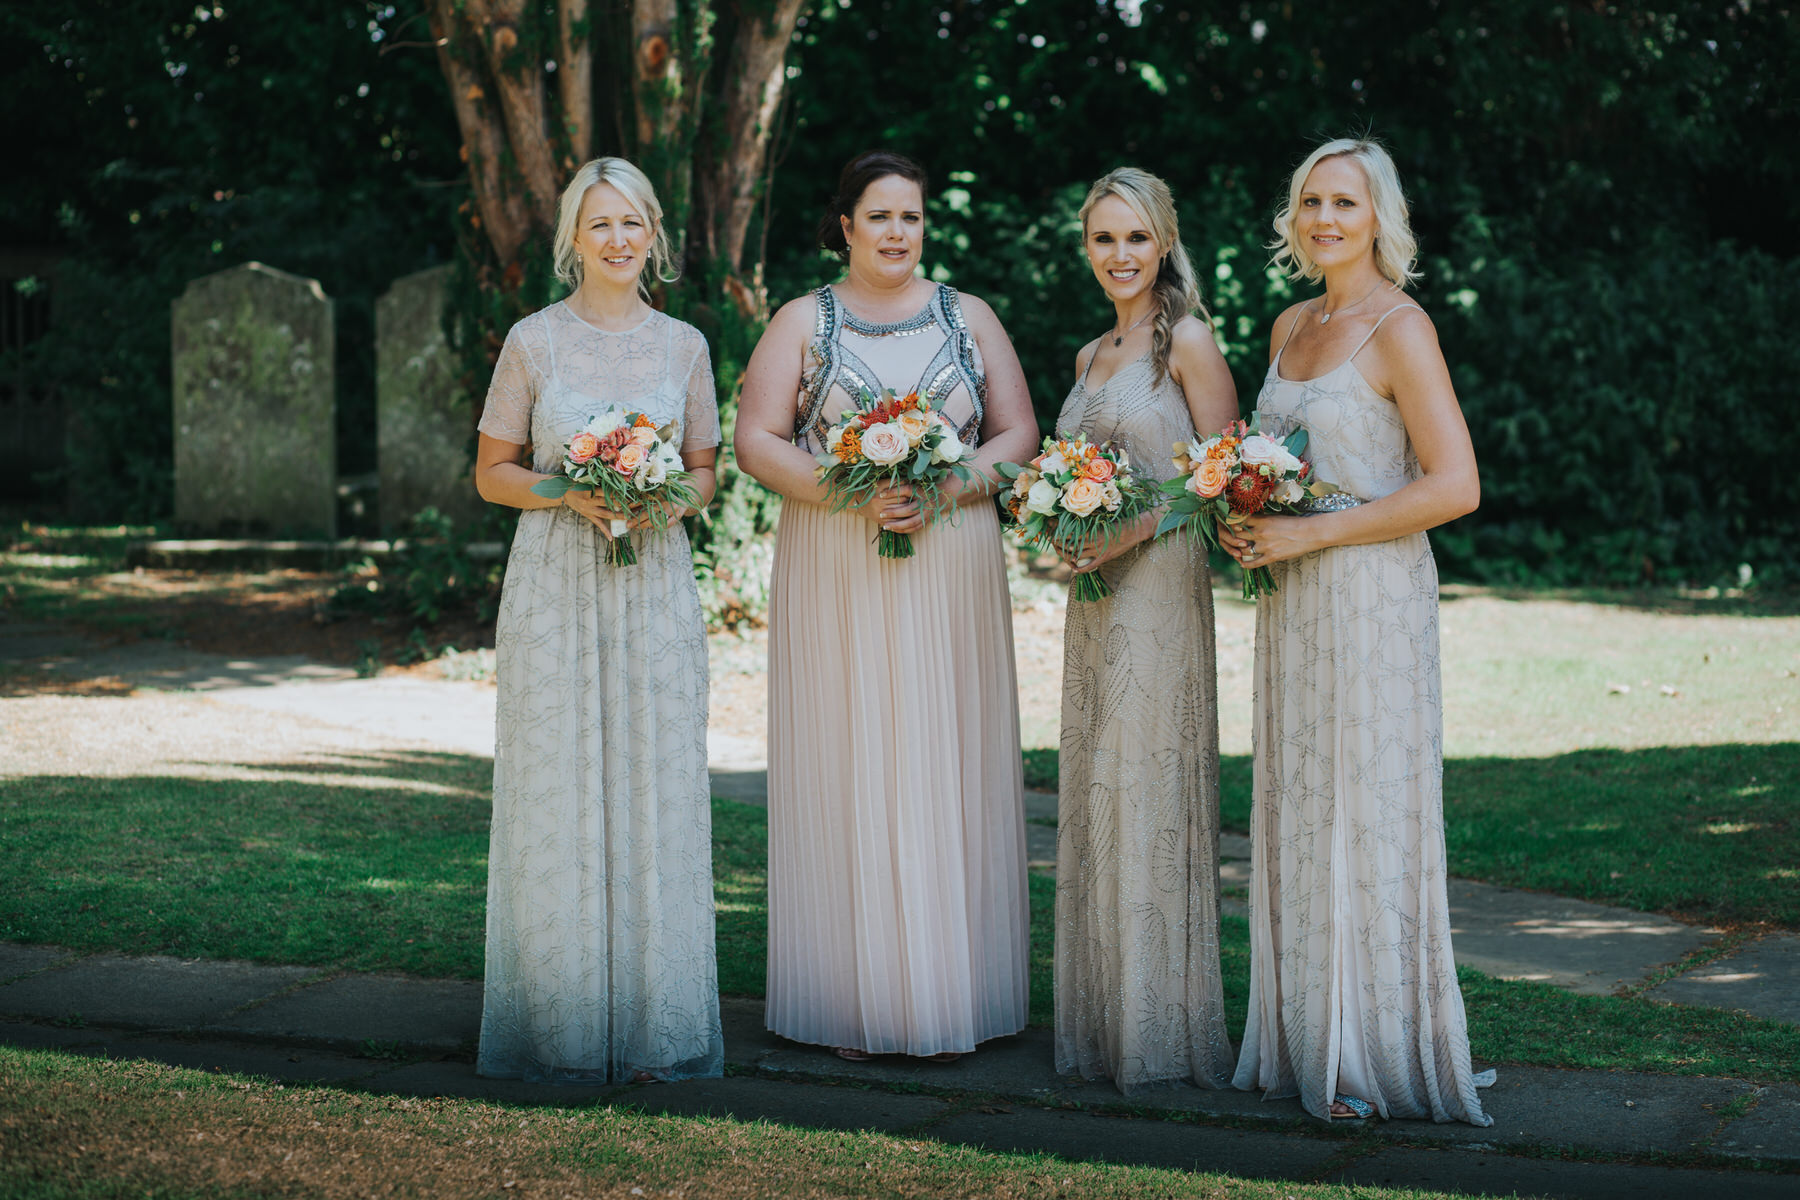 89 bridesmaids portrait church reportage wedding.jpg